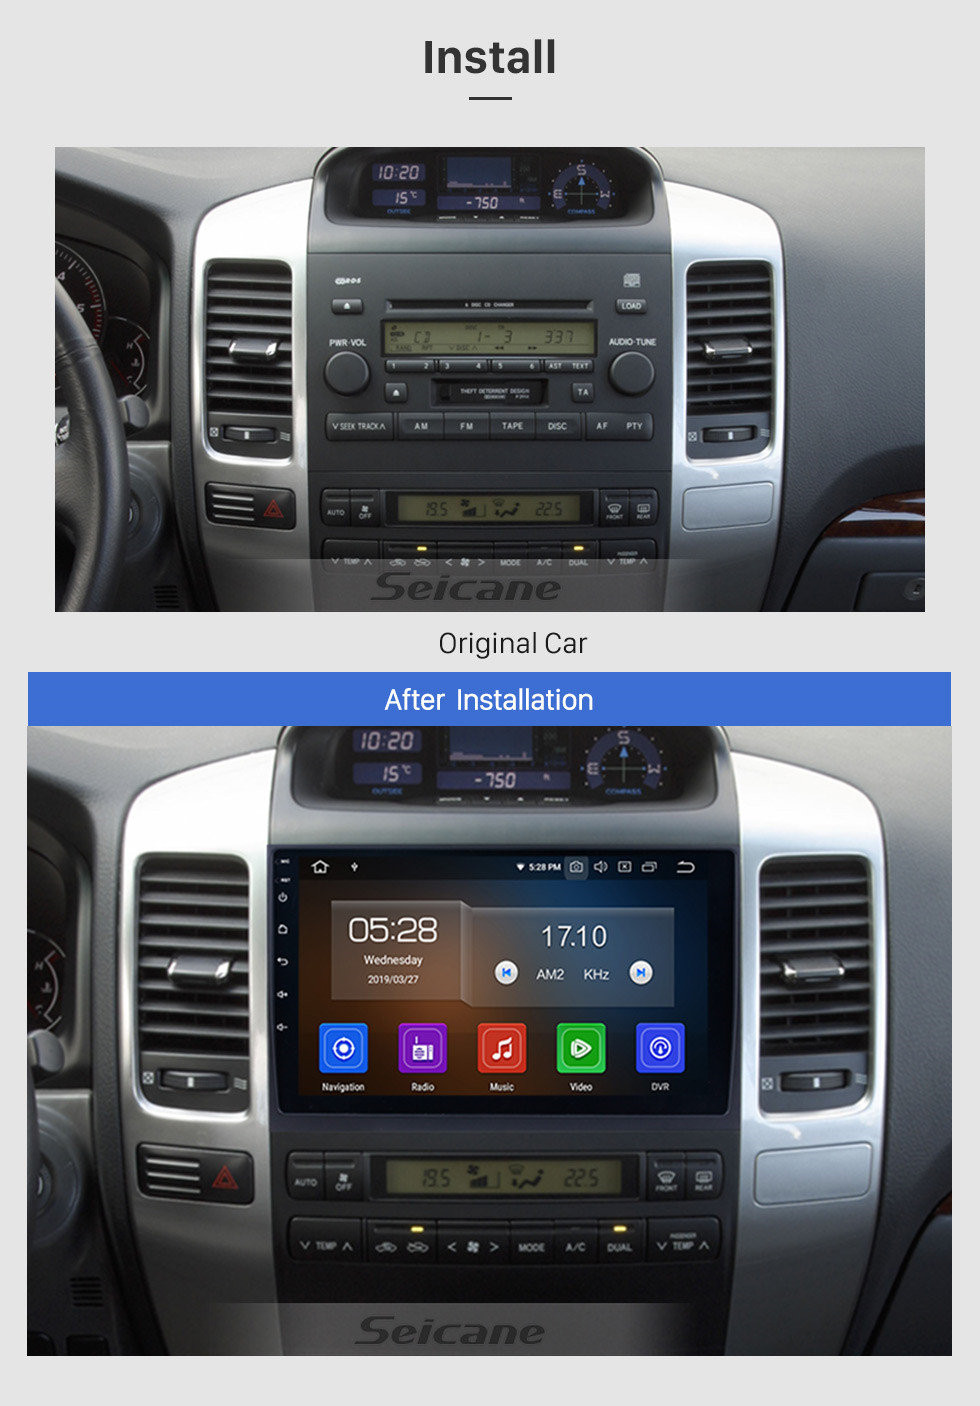 Seicane 2002-2009 Toyota Prado Cruiser Android 10.0 Autoradio DVD Navigation System with 3G WiFi Bluetooth Mirror Link OBD2 Rearview Camera HD 1024*600 Multi-touch Screen